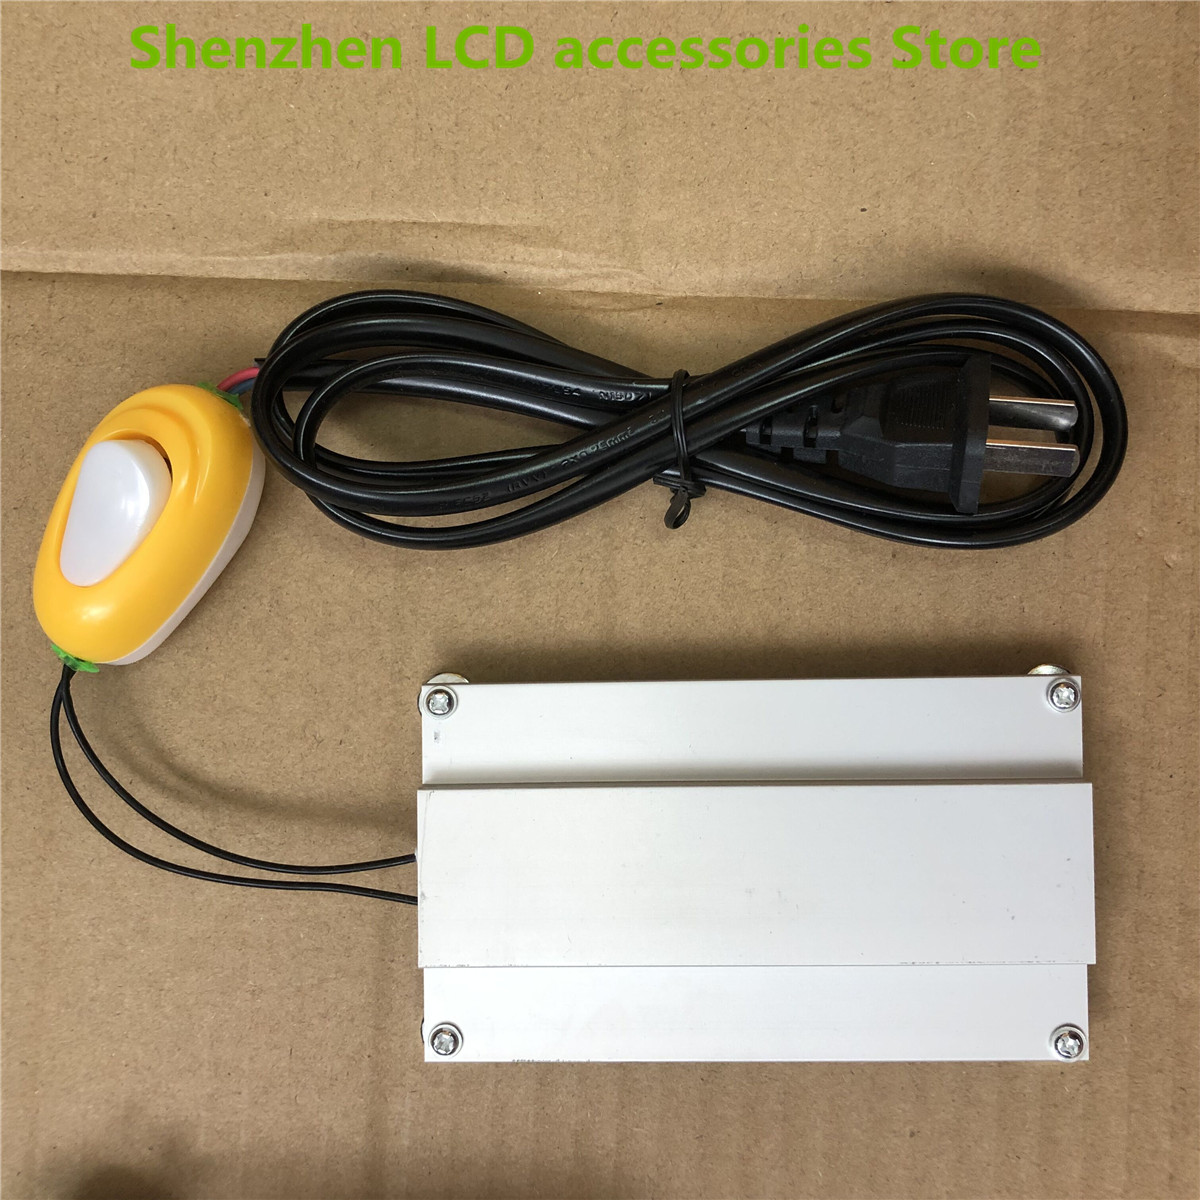 2Pieces/lot High-power Circuit Board Chip Heater LED Lamp Bead Disassembly Welding Plate PTC Heating Plate SMD Chip  100%NEW